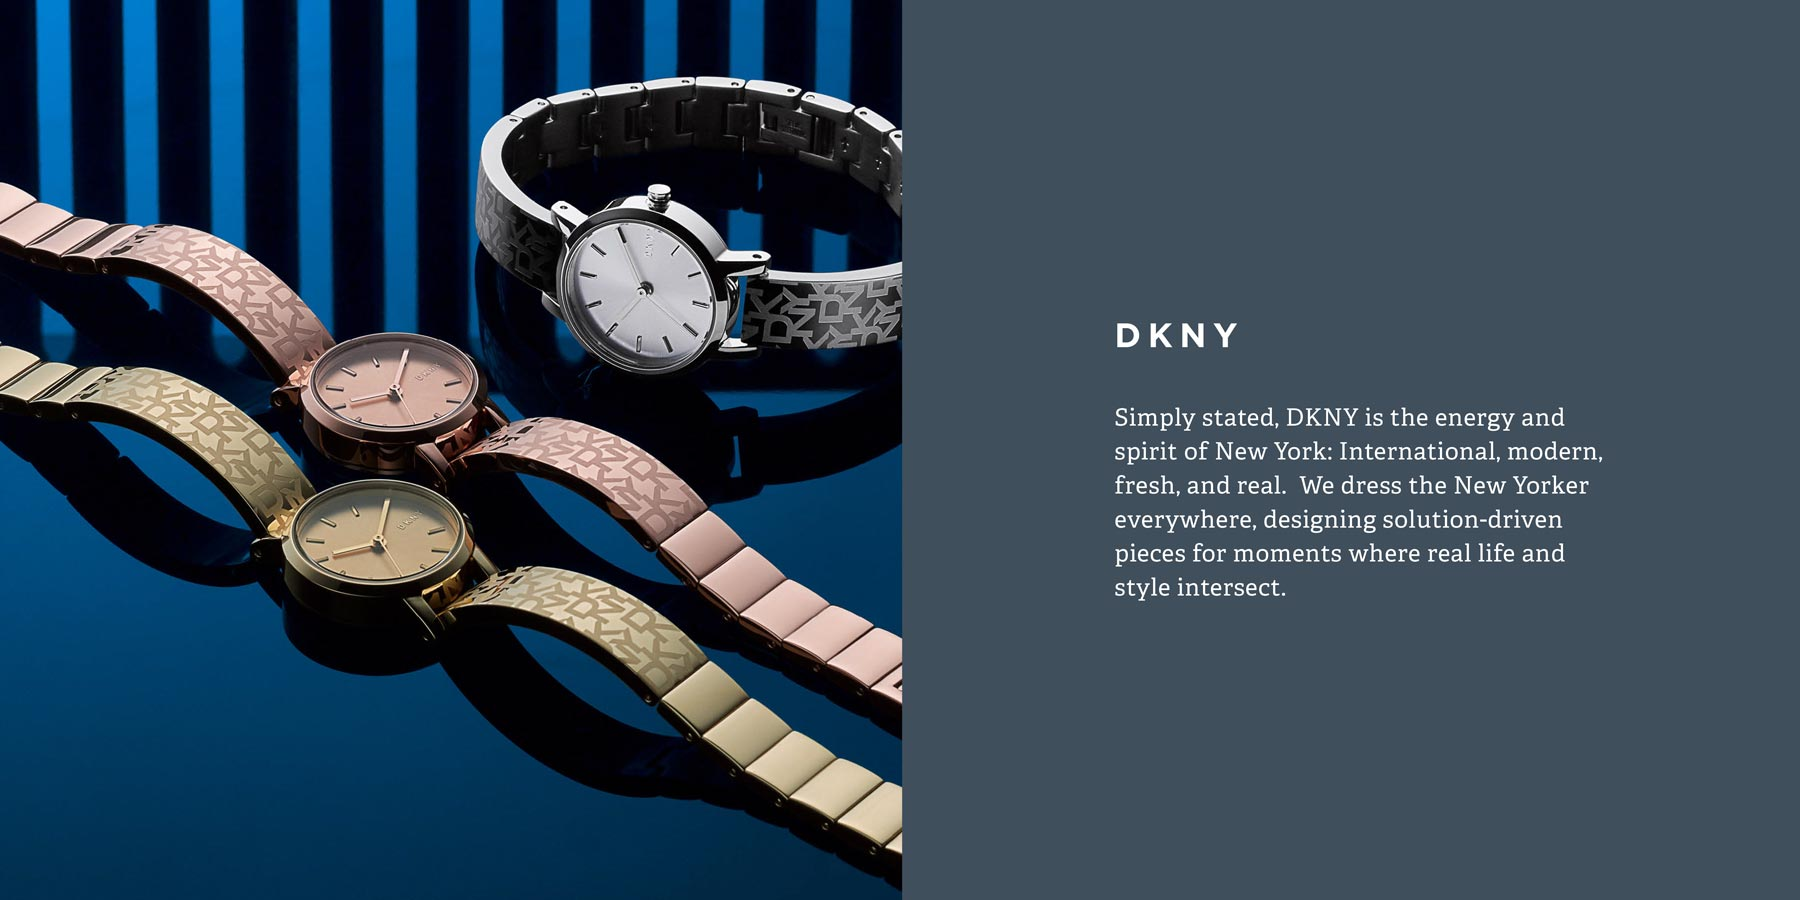 Simply stated, DKNY is the energy and spirit of New York: International, modern, fresh, and real.